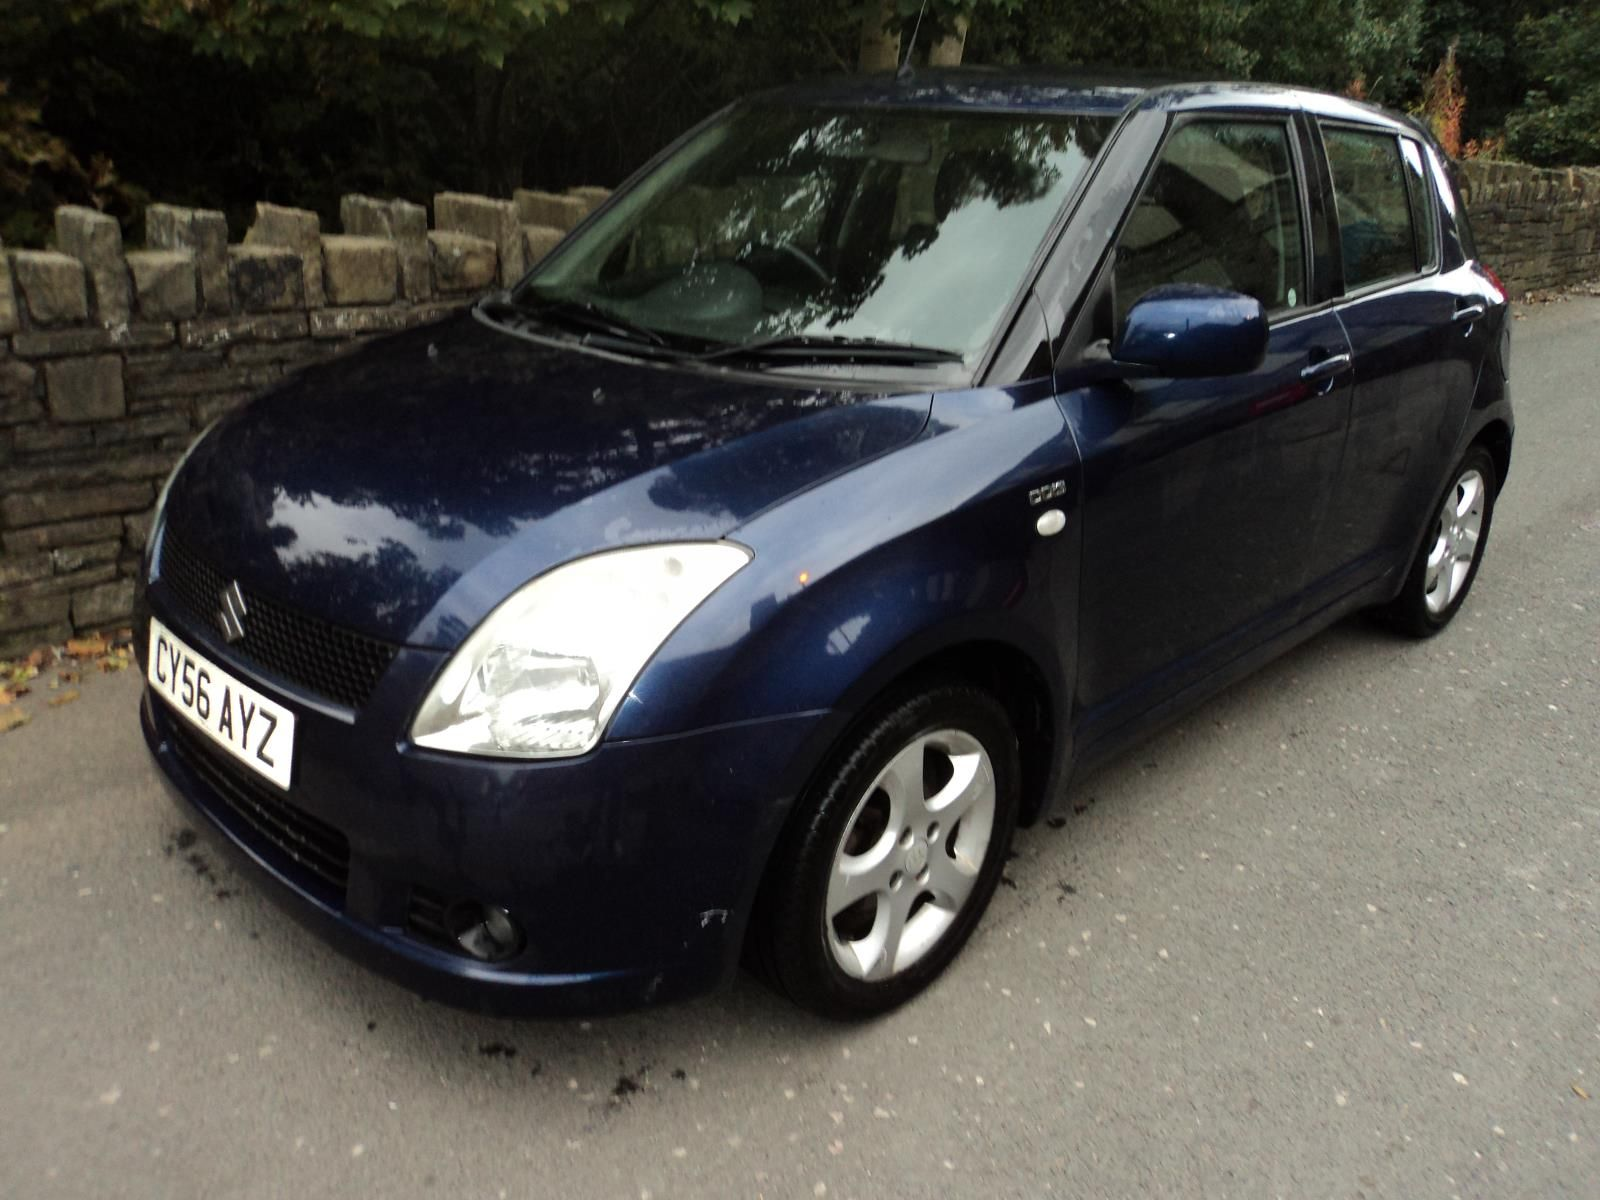 2006 (56) - Suzuki Swift 1.3 DDiS**DIESEL**FULL SERVICE HISTORY**6 MONTHS WARRANTY** 5-Door, photo 1 of 9